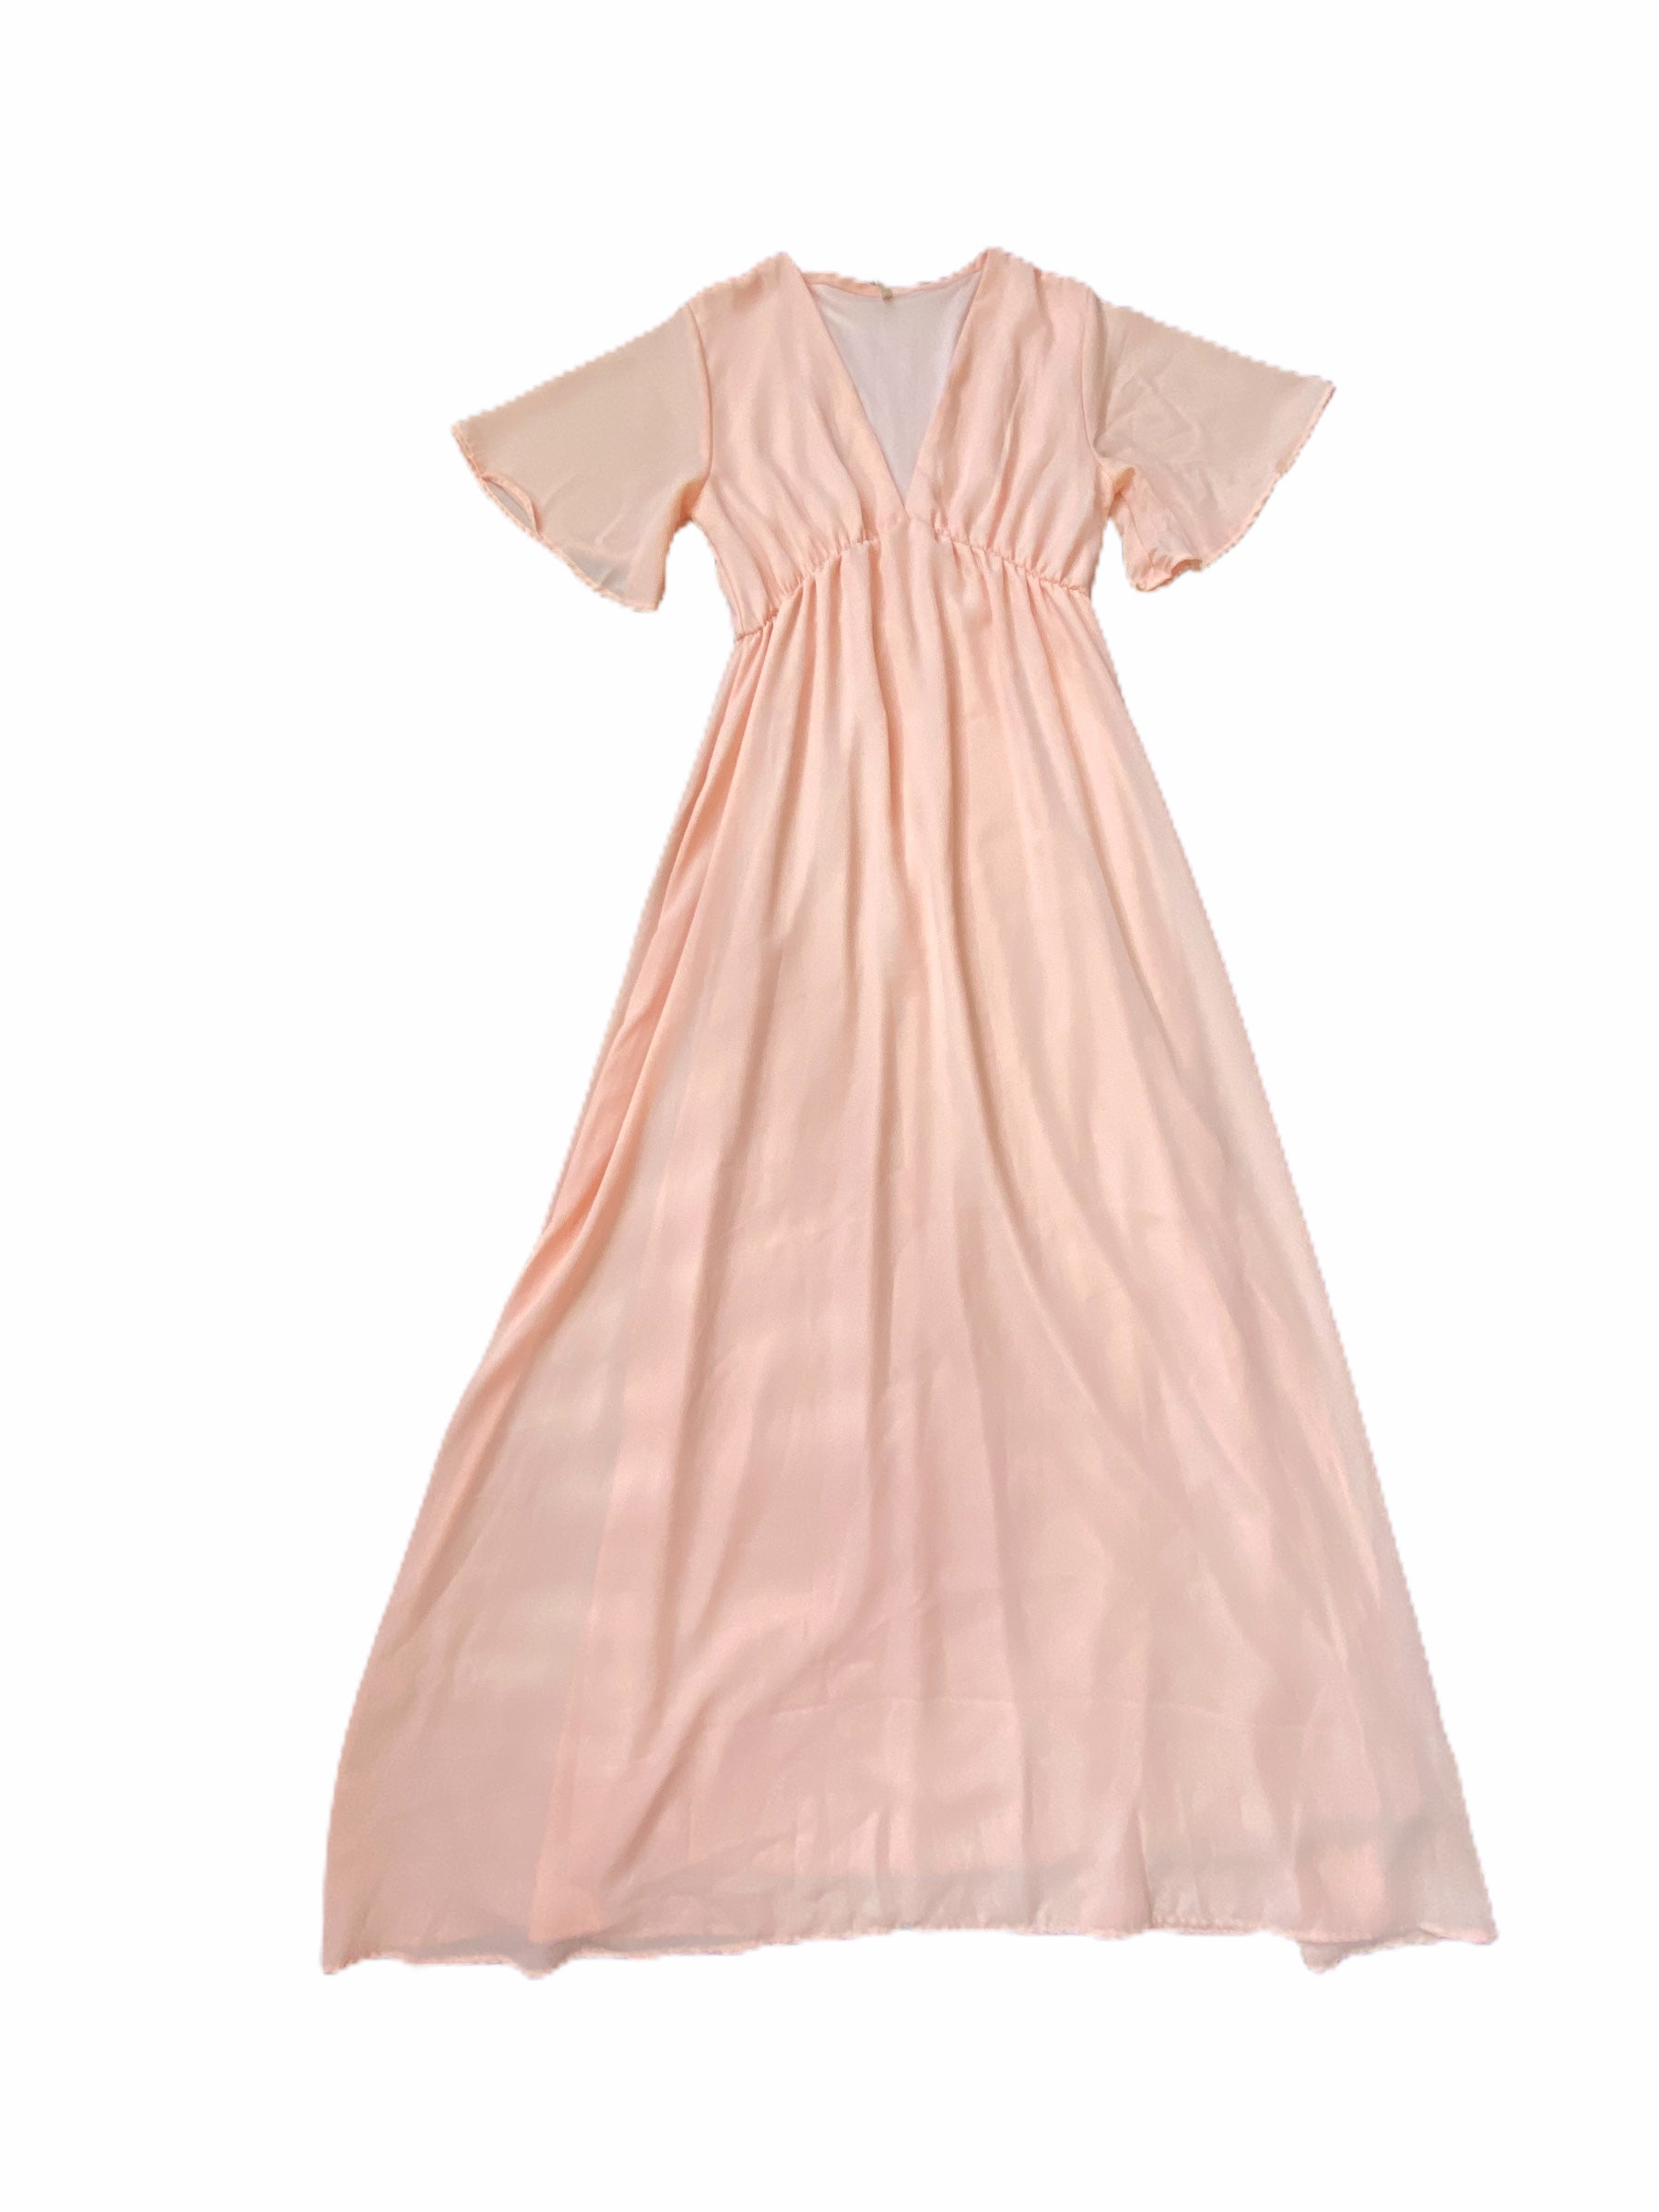 Pink Blush Pink Dress (Maternity Small)